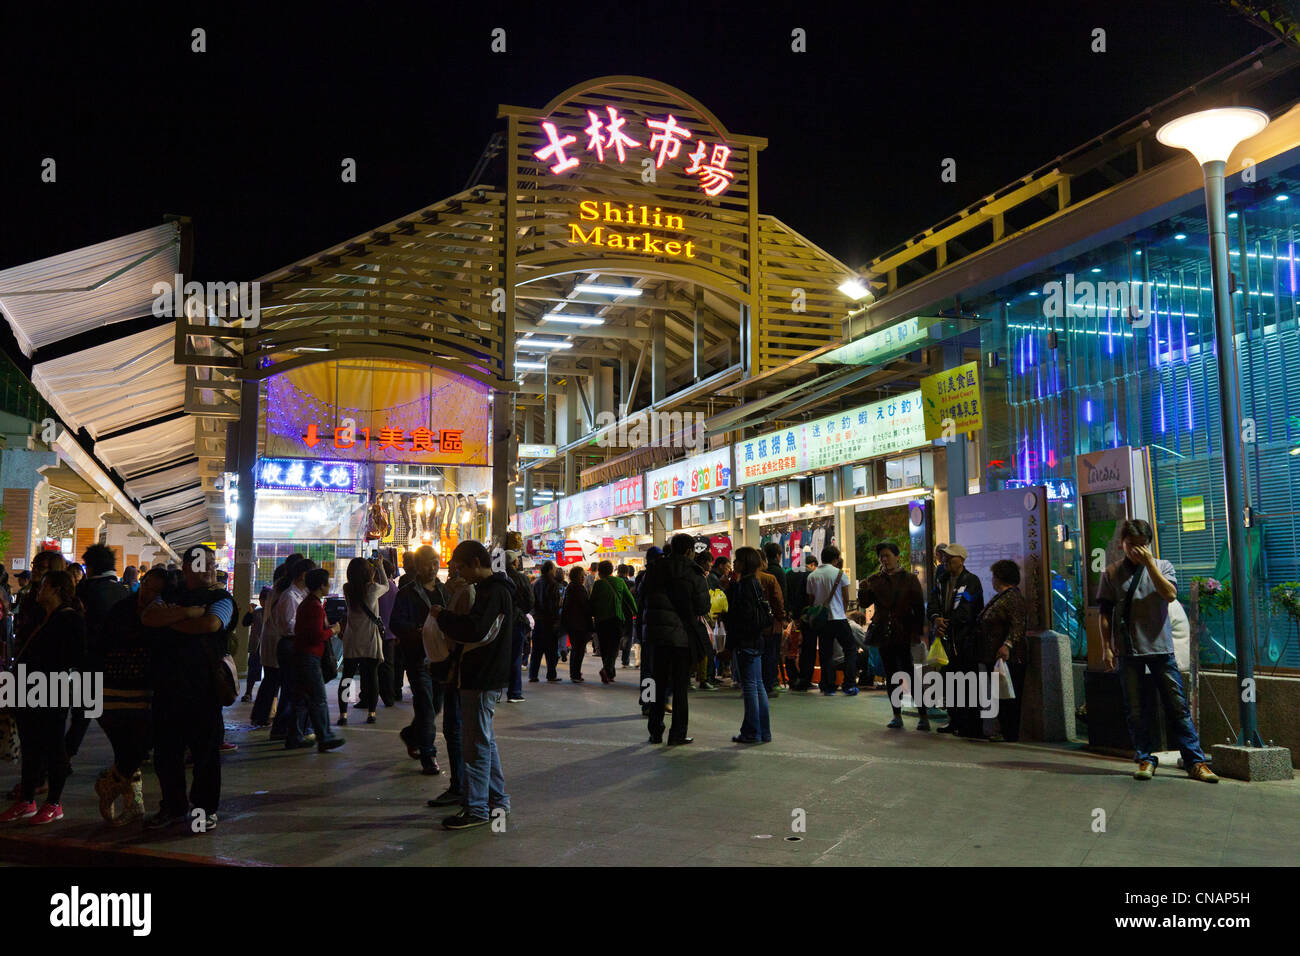 Entrance to Shilin Night Market Taipei Taiwan. JMH5977 - Stock Image